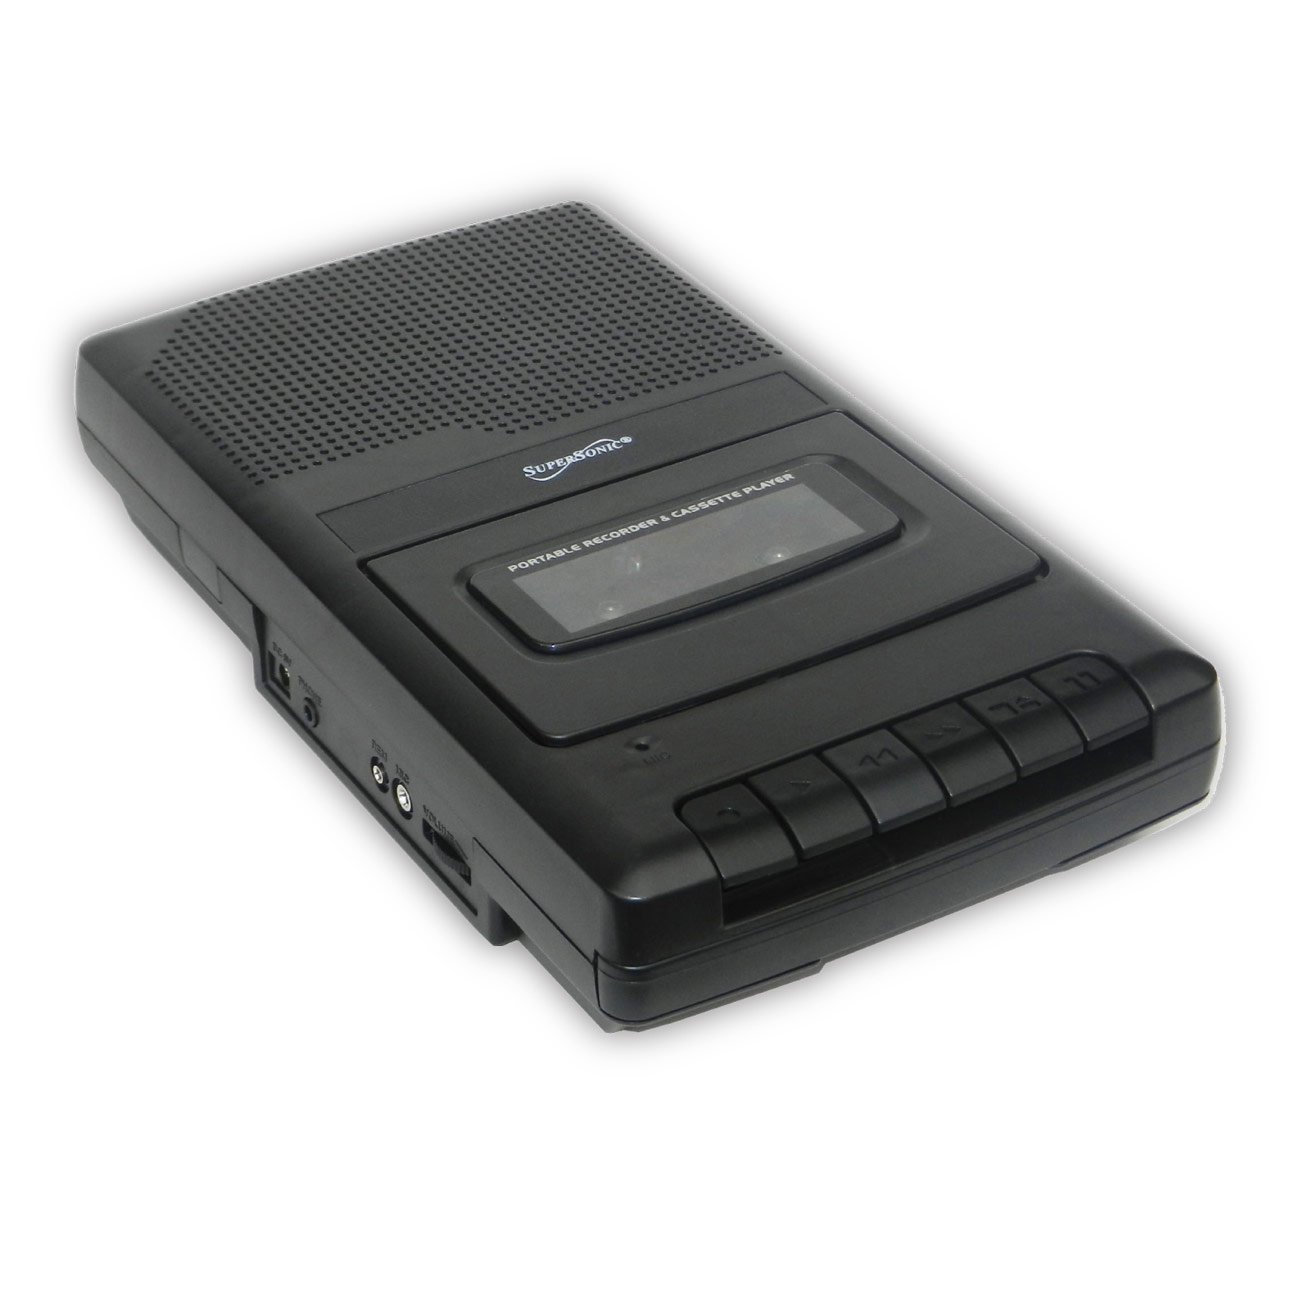 RCA Cassette Recorder and Player: AC-DC Price: $32.95